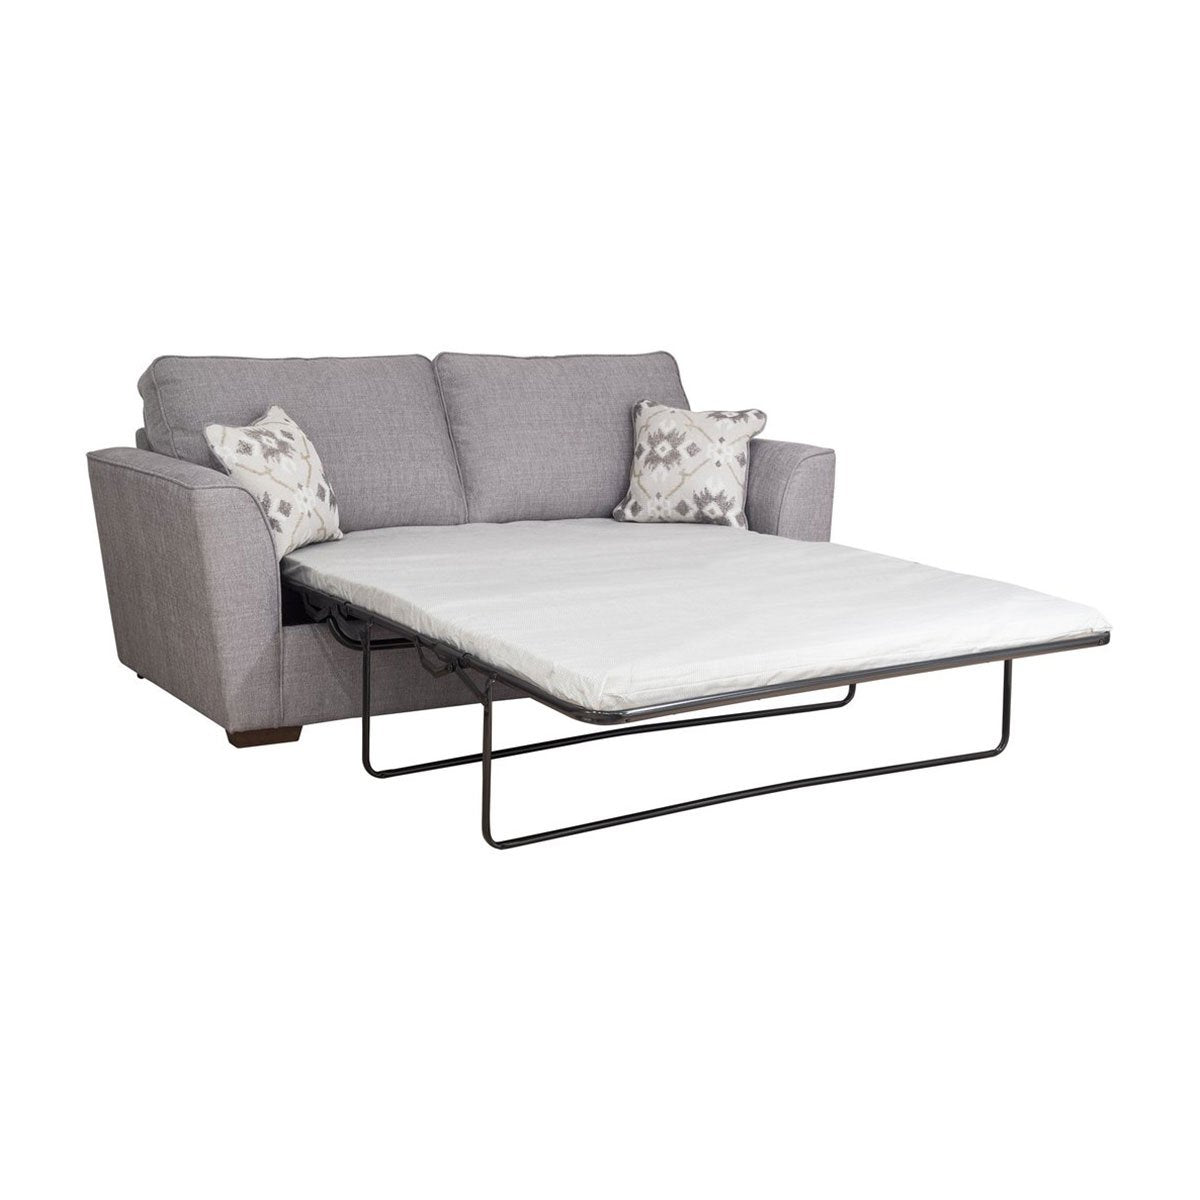 Capri 3 Seater Sofa Bed